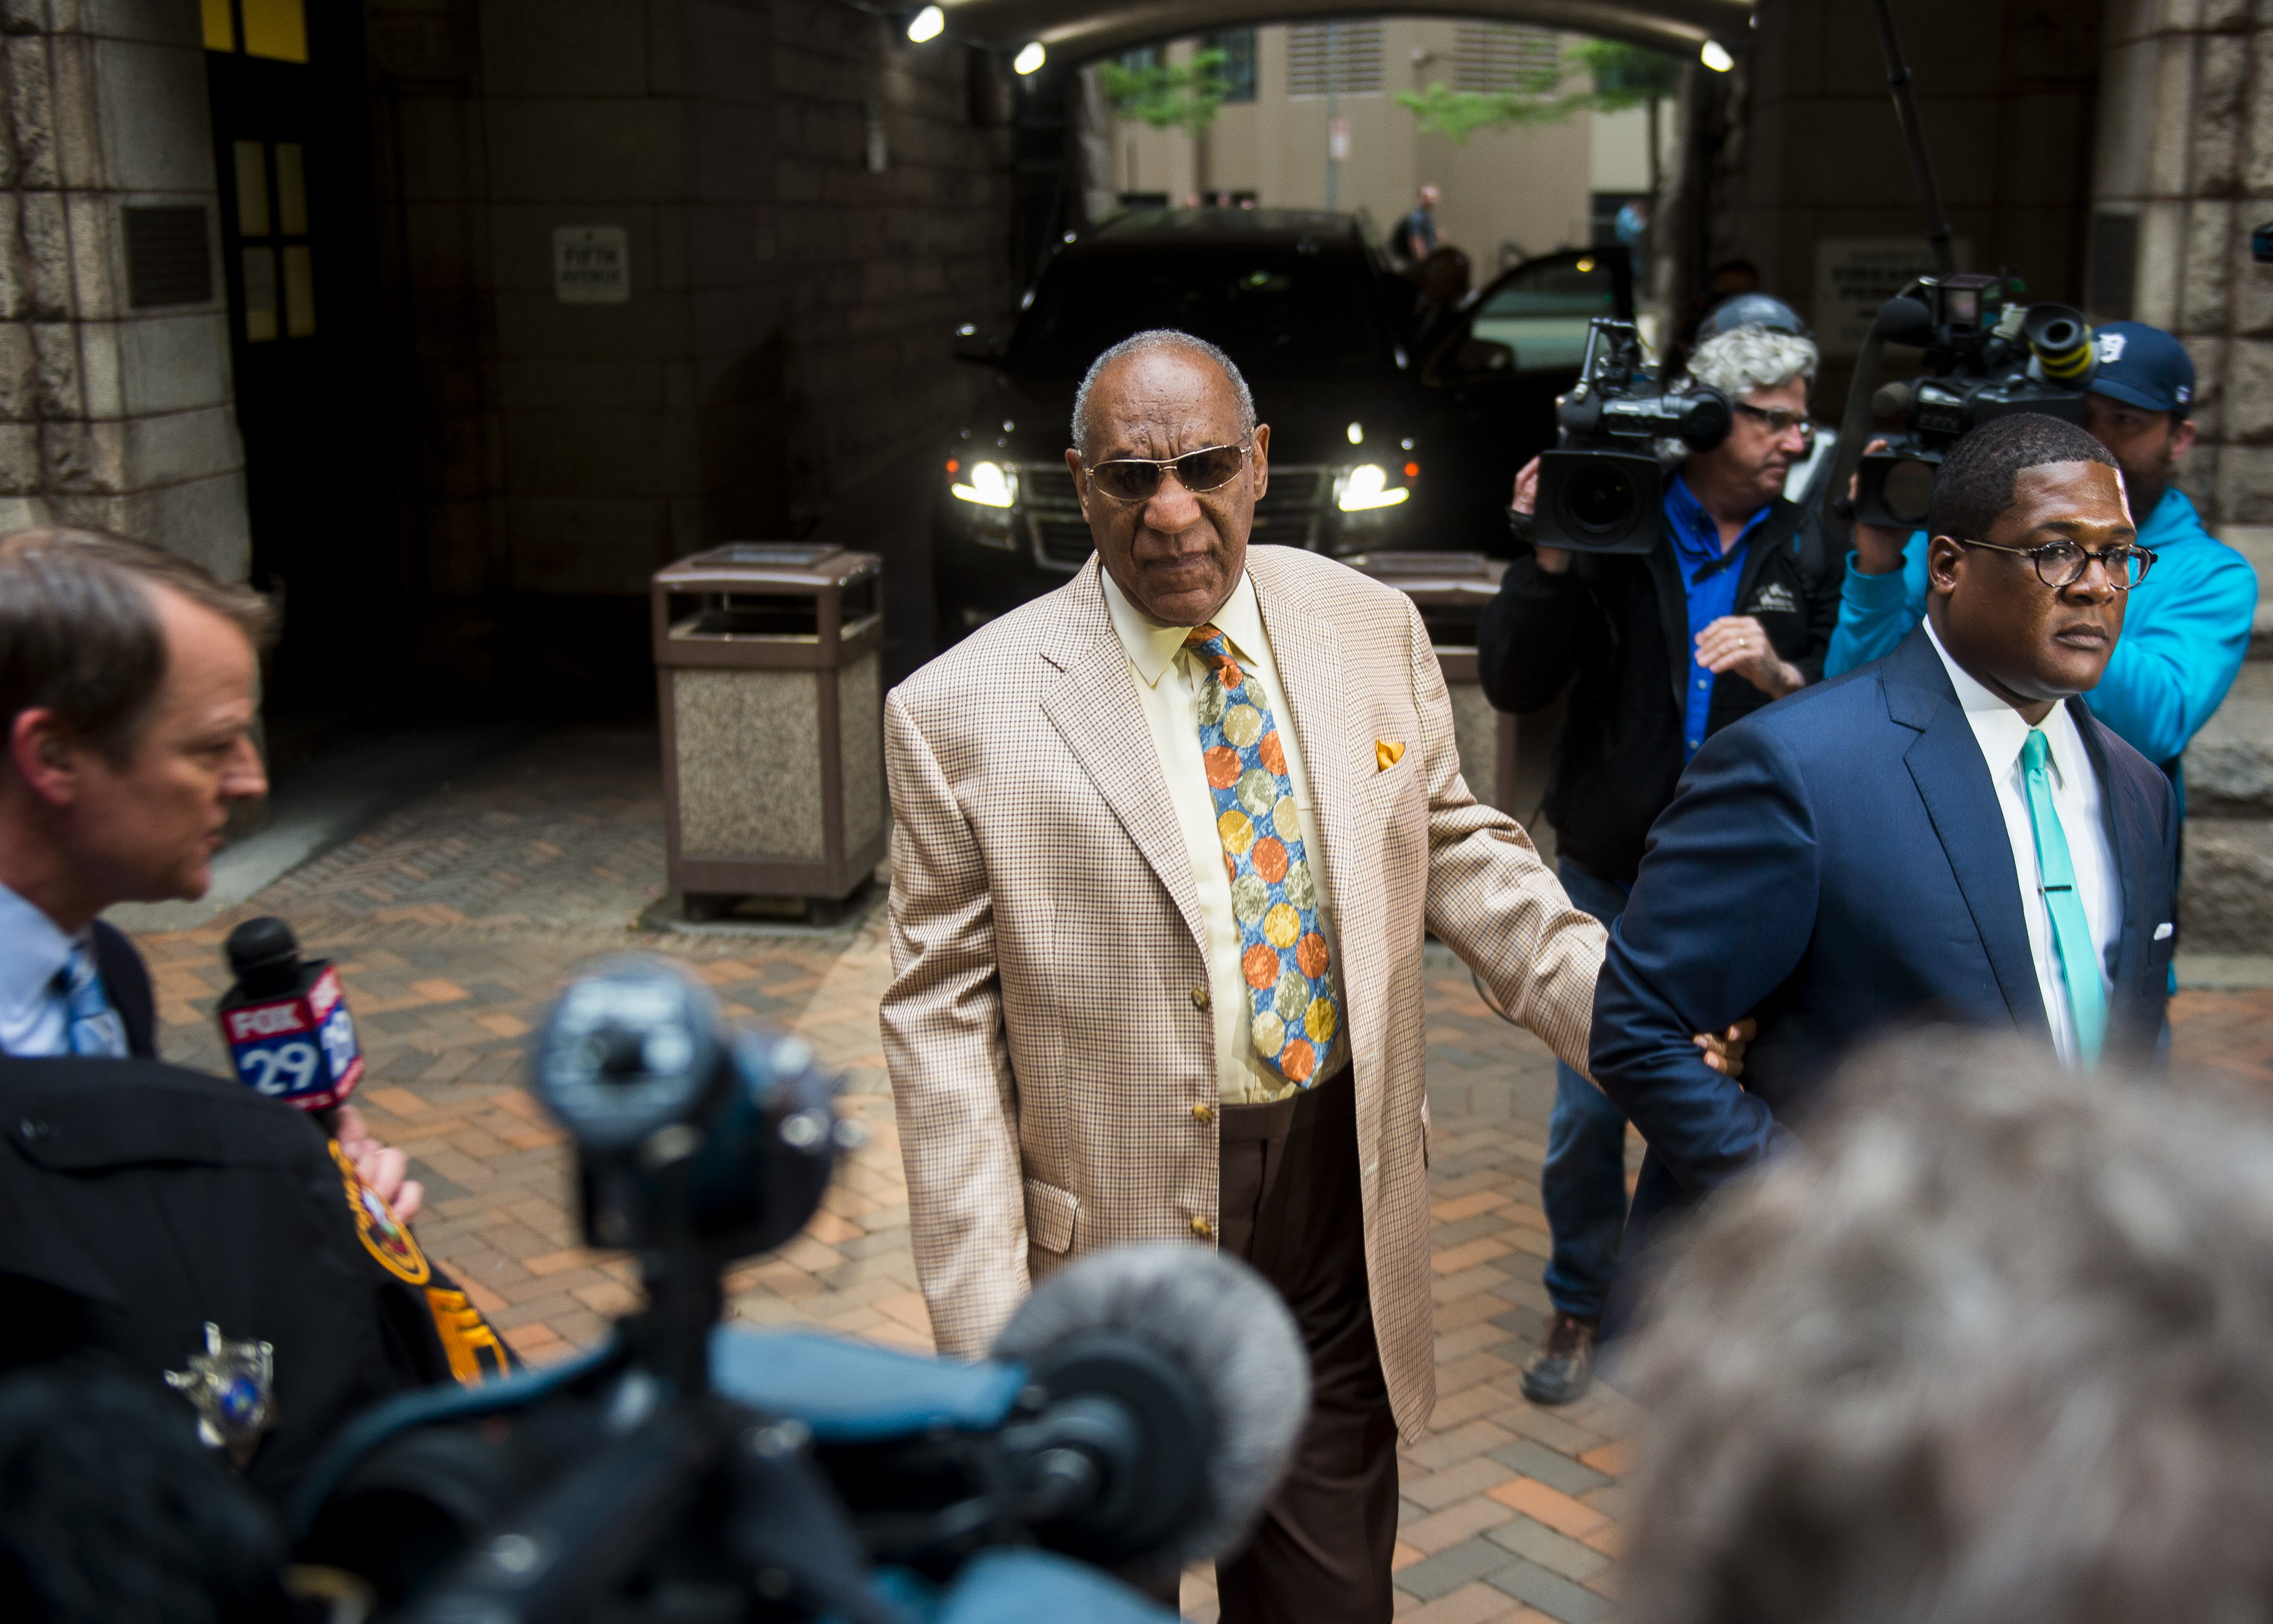 Actor Bill Cosby arrives at the Allegheny County Courthouse for the first day of jury selection in his sexual assault case on May 22, 2017 in Pittsburgh, Pennslyvania. (Nate Smallwood -- Getty Images)